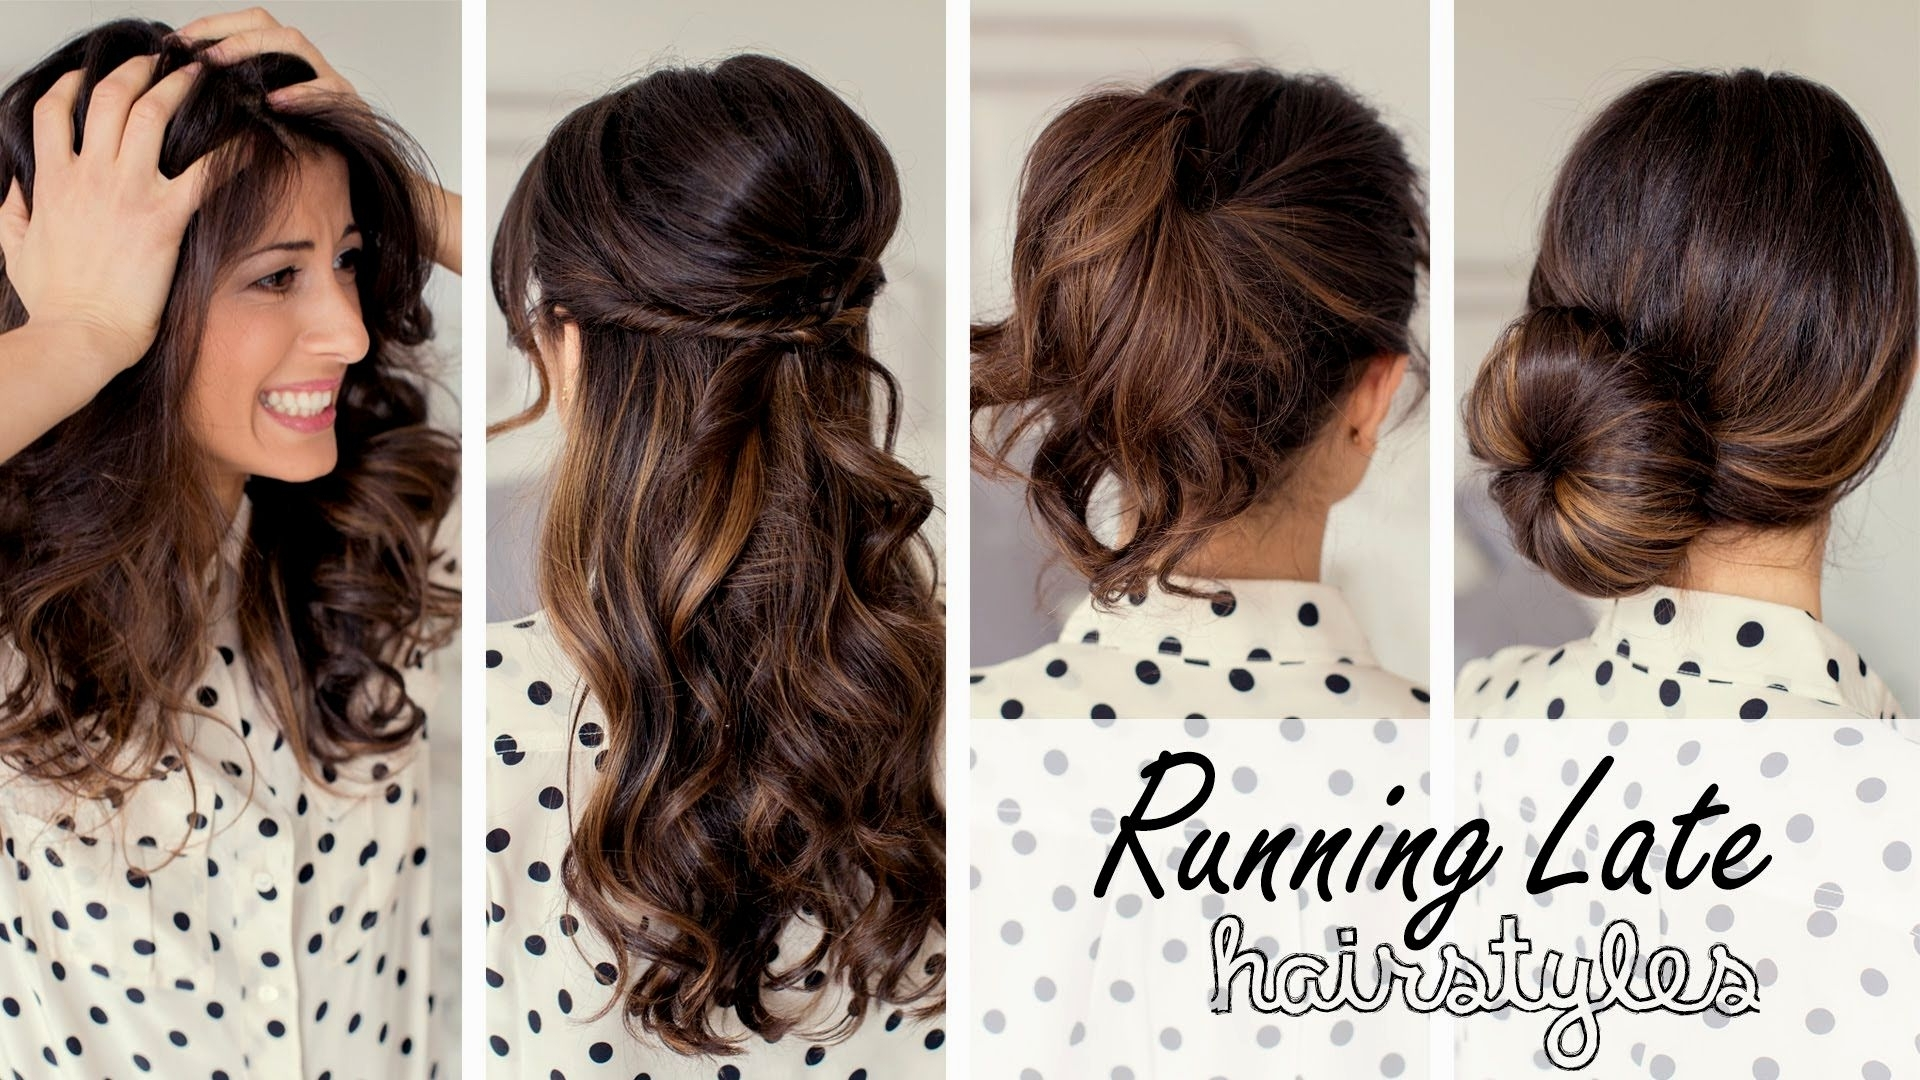 Easy Hairstyles For Long Hair To Do At Home Stepstep Video Throughout Fashionable Wedding Hairstyles That You Can Do At Home (View 5 of 15)